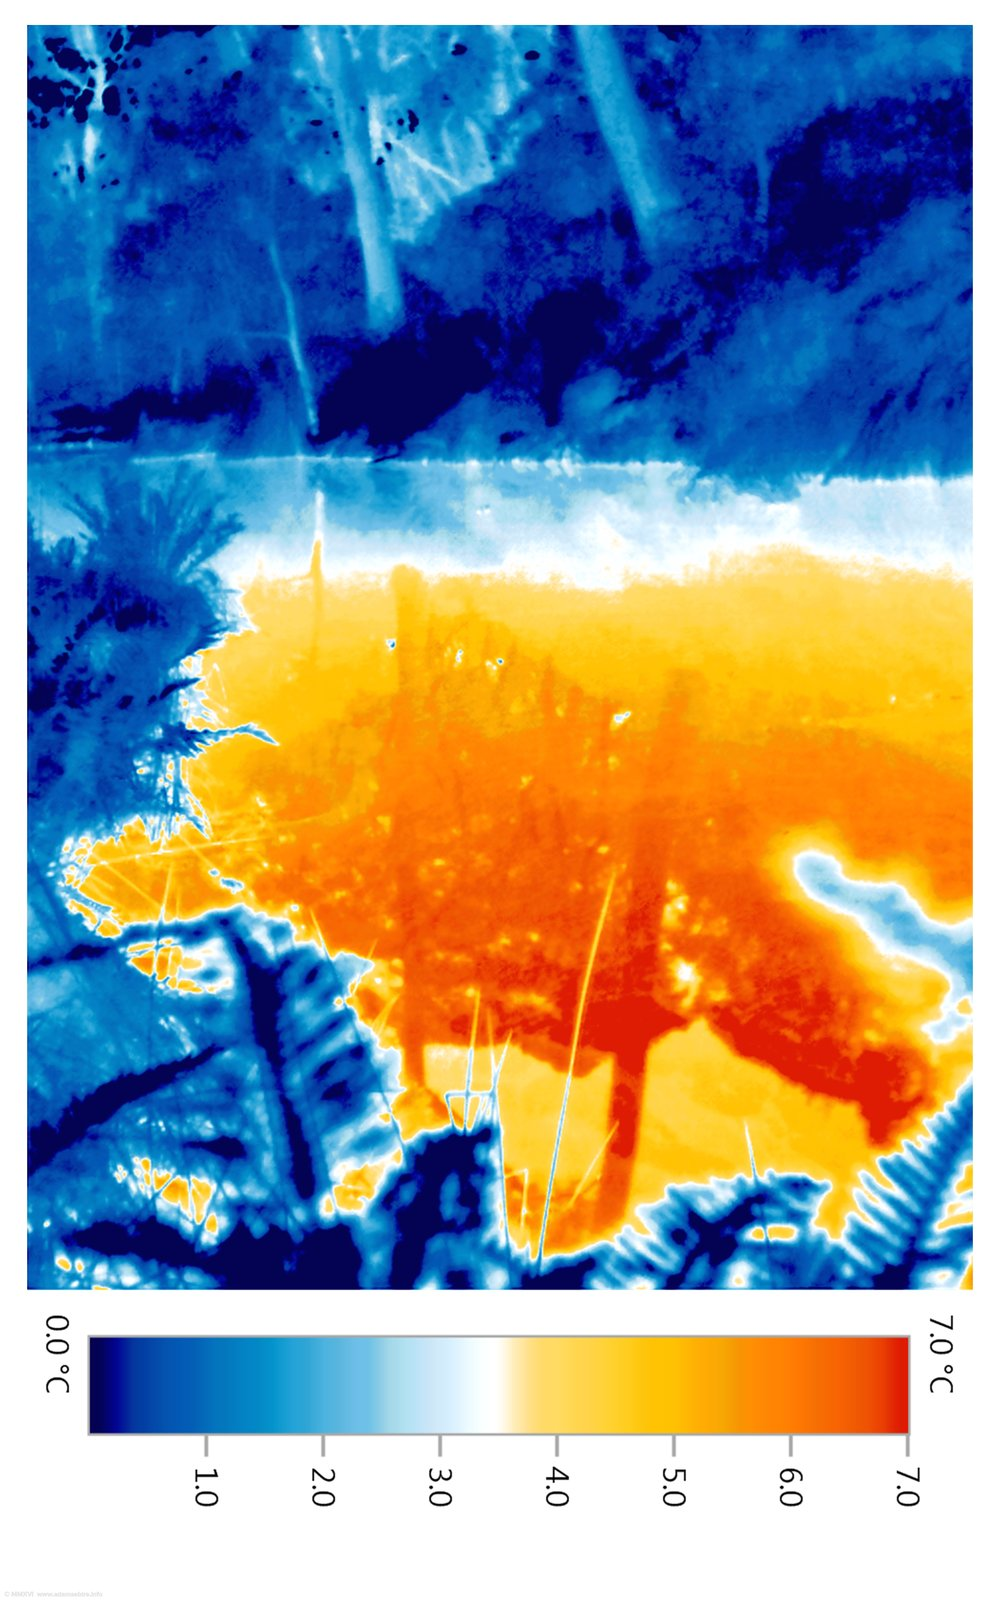 Thermal image of a lake in winter